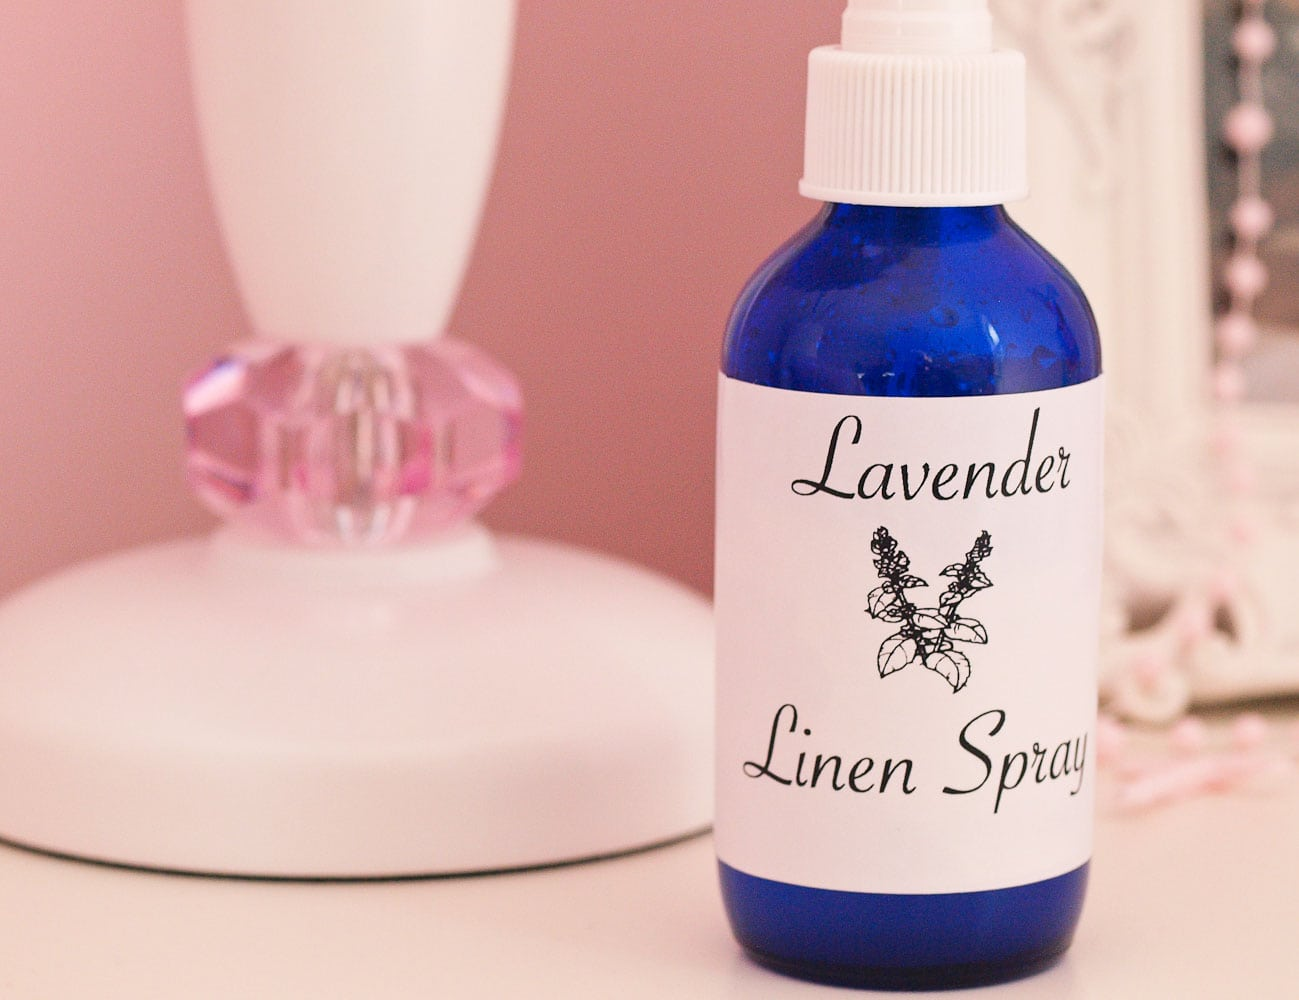 DIY Lavender Linen Spray.  Make your own lavender linen spray for much cheaper than you can buy it, plus you control the ingredients! We spray this on my kids' pillows every night and it helps them calm down at bedtime and sleep restfully!  My husband and I use it, too.